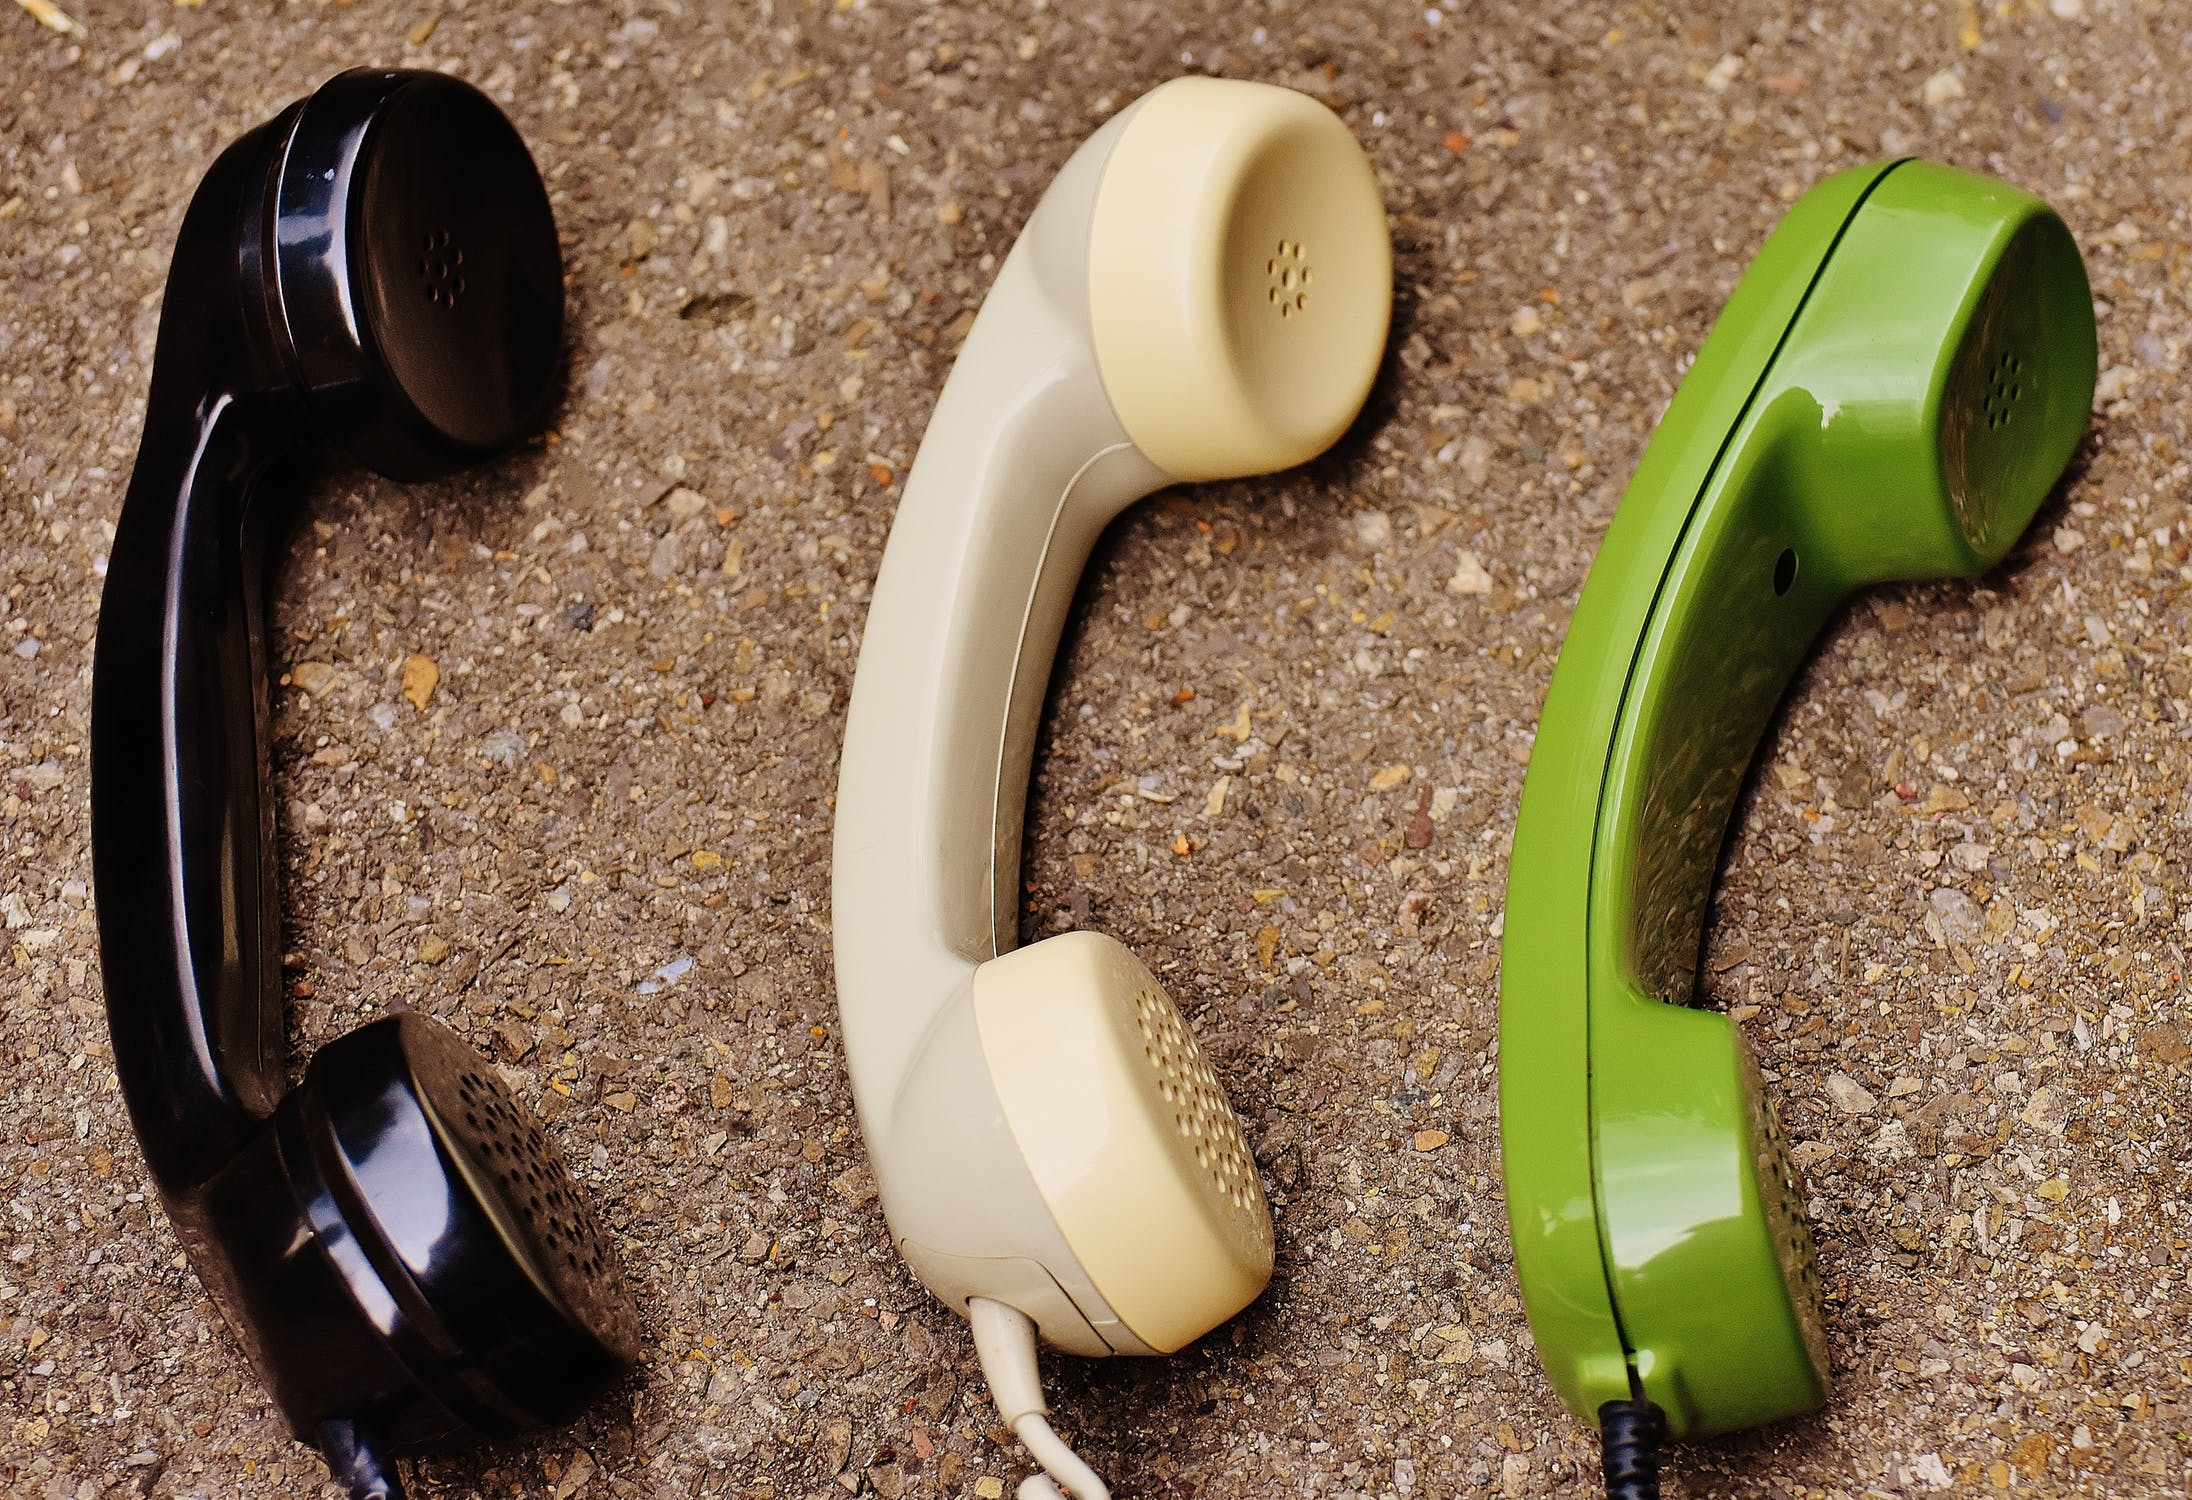 All about landline phones